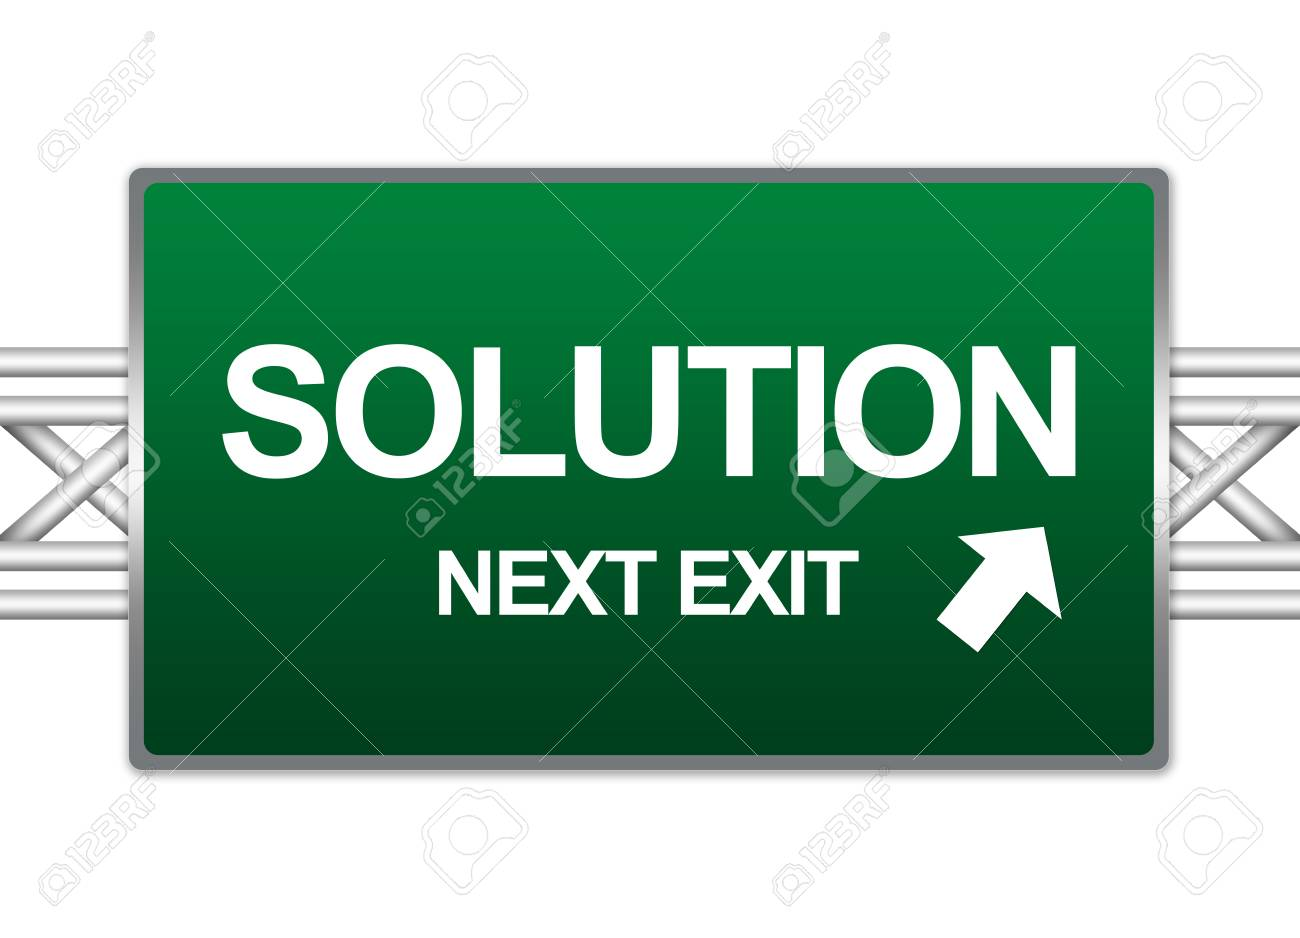 Green Highway Street Sign For Business Concept Present By Solution Next Exit Sign Isolate on White Background Stock Photo - 17404770